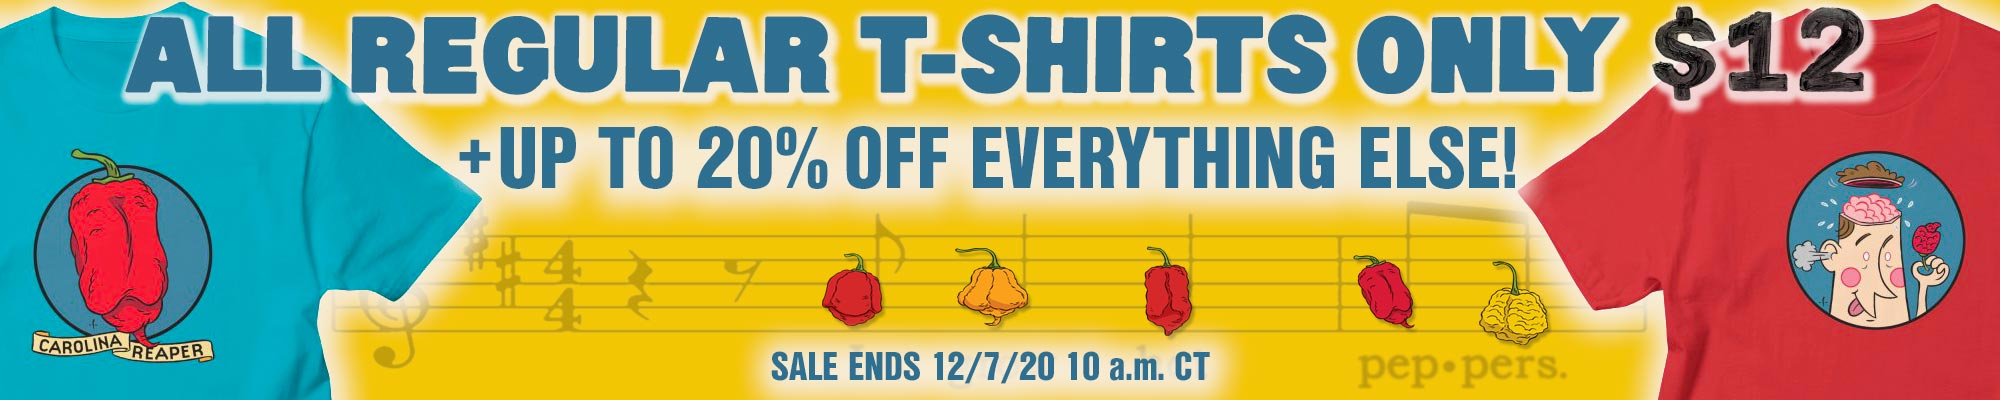 Banner reads: ALL REGULAR T-SHIRTS ONY $12 + UP TO 20% OFF EVERYTHING ELSE